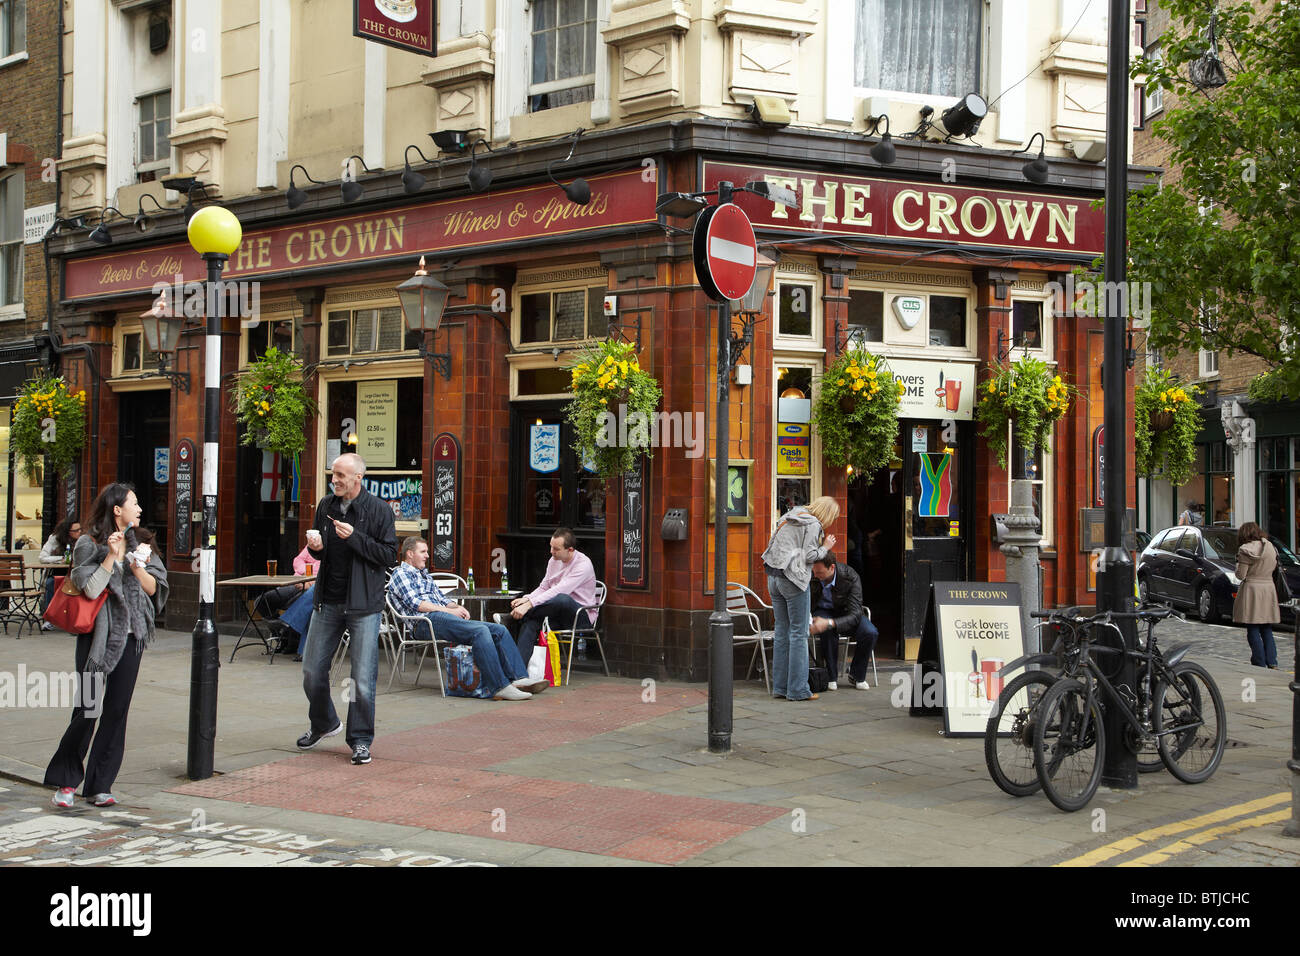 The Crown Pub Seven Dials Covent Garden London England United Stock Photo Royalty Free